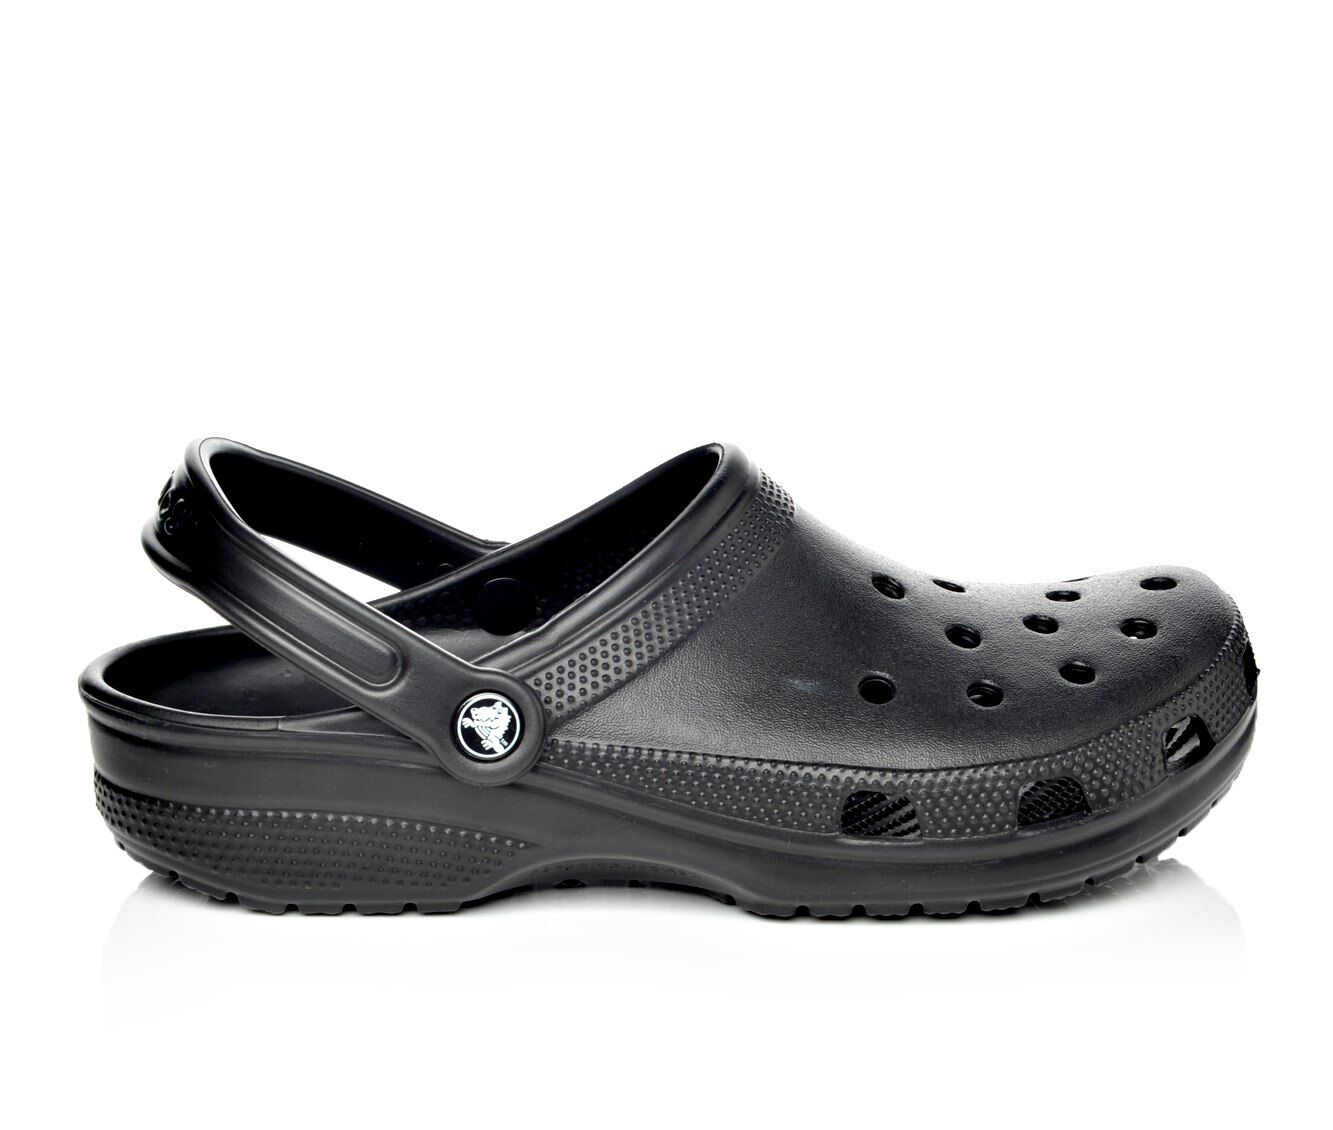 Men's Crocs Classic-M Clogs new styles online discount geniue stockist sale browse bzPcW